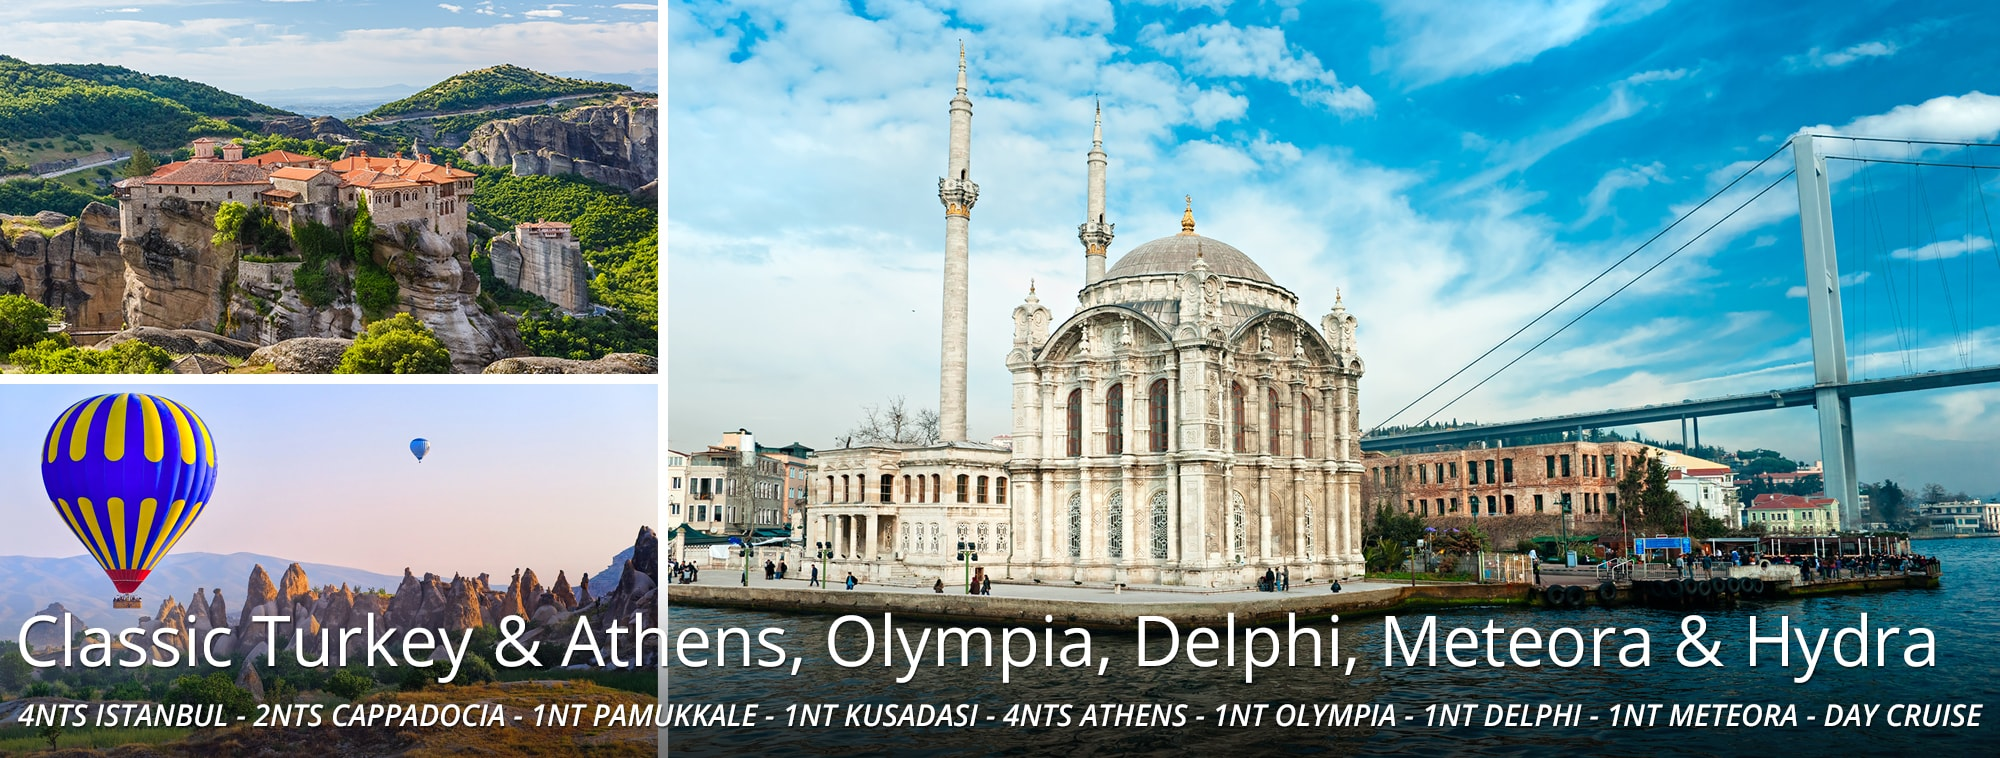 Classic Turkey & Athens, Olympia, Delphi, Meteora, and Hydra Tour Top Banner